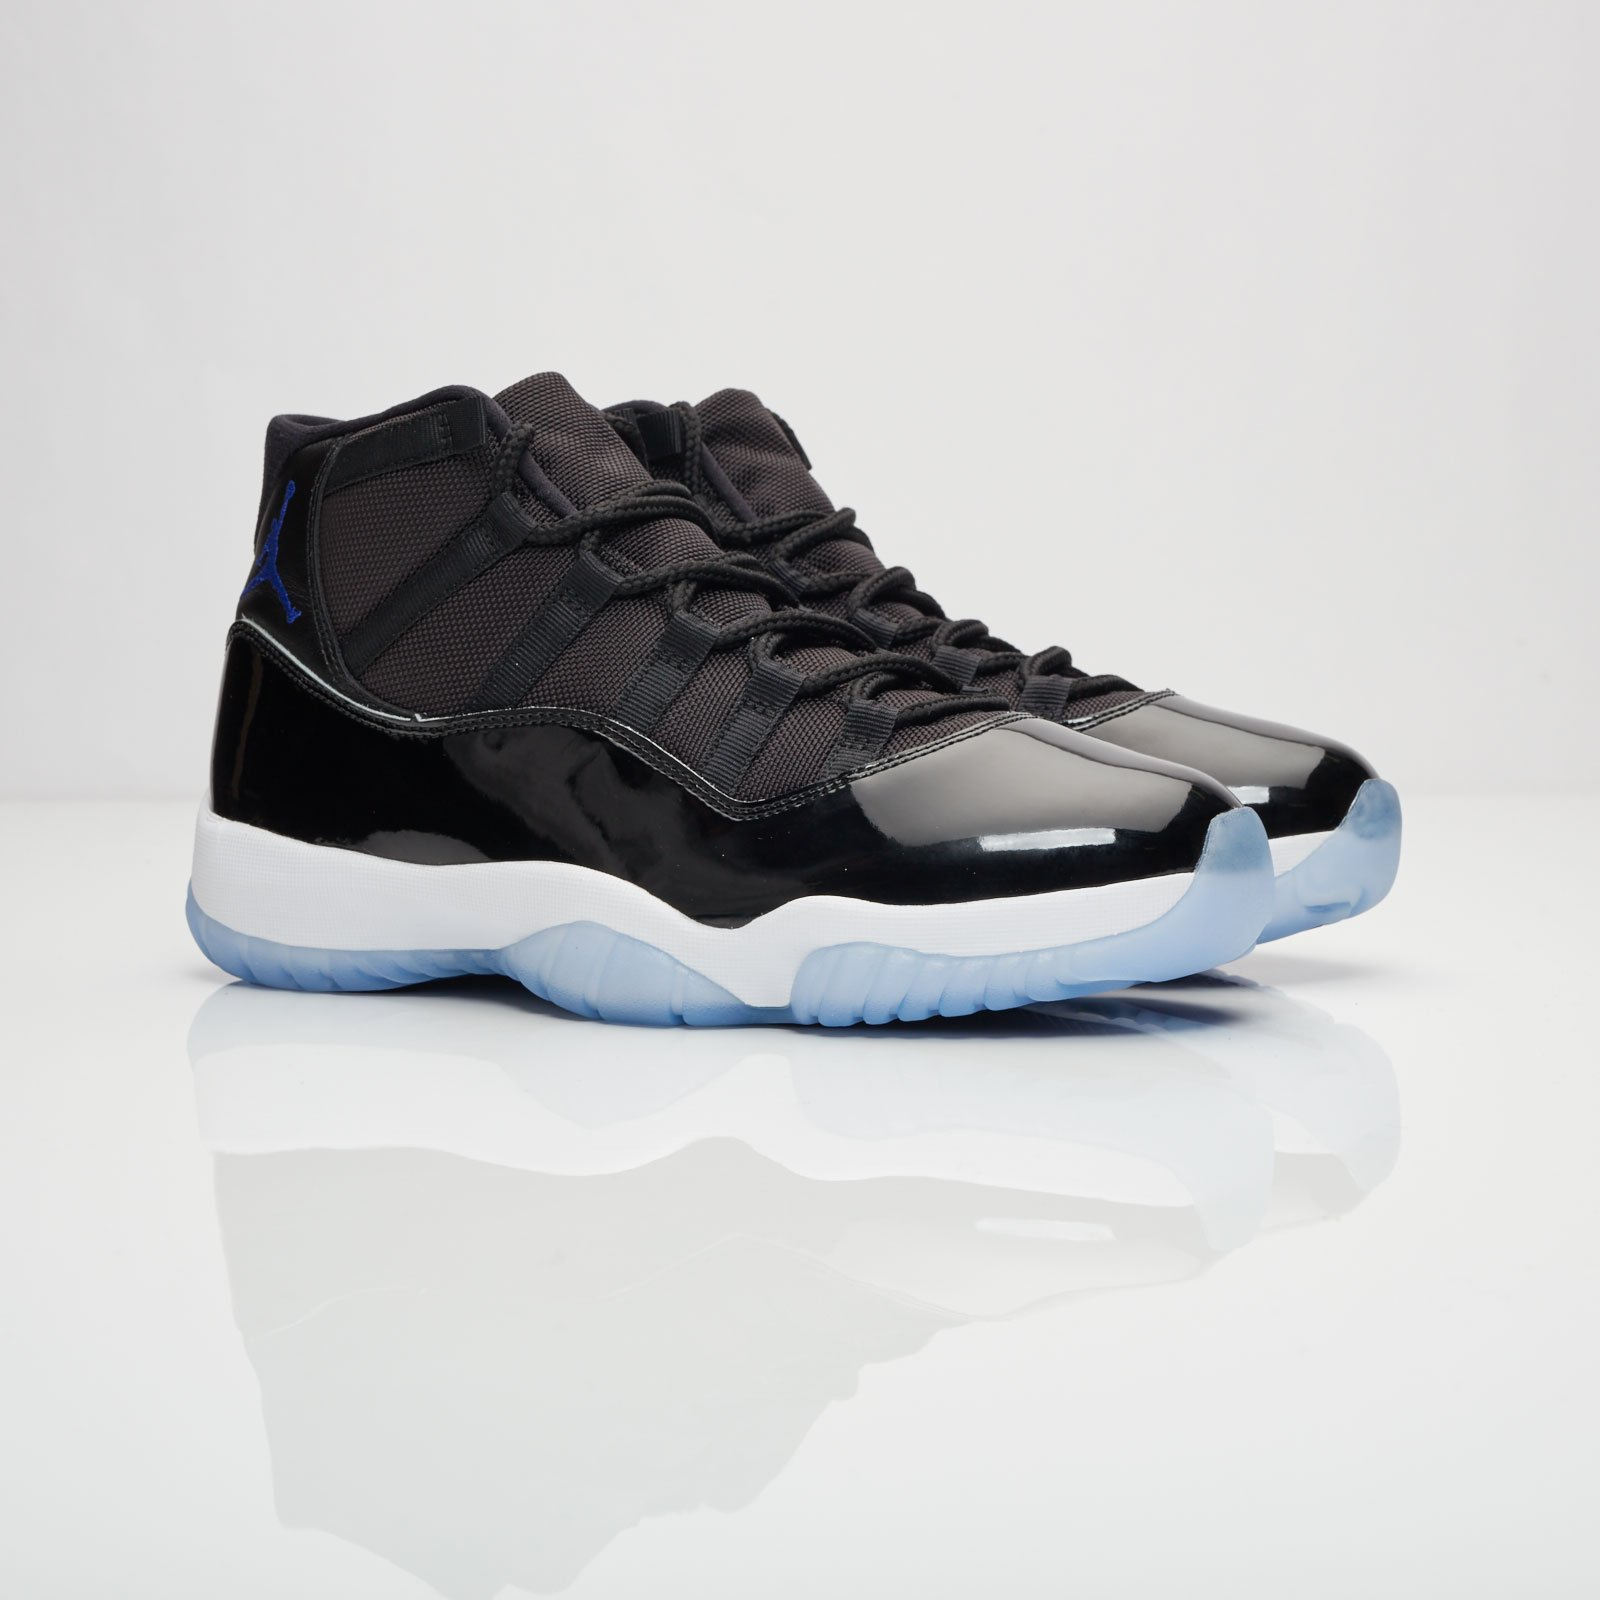 best website 14745 131f4 Jordan Brand Air Jordan 11 Retro